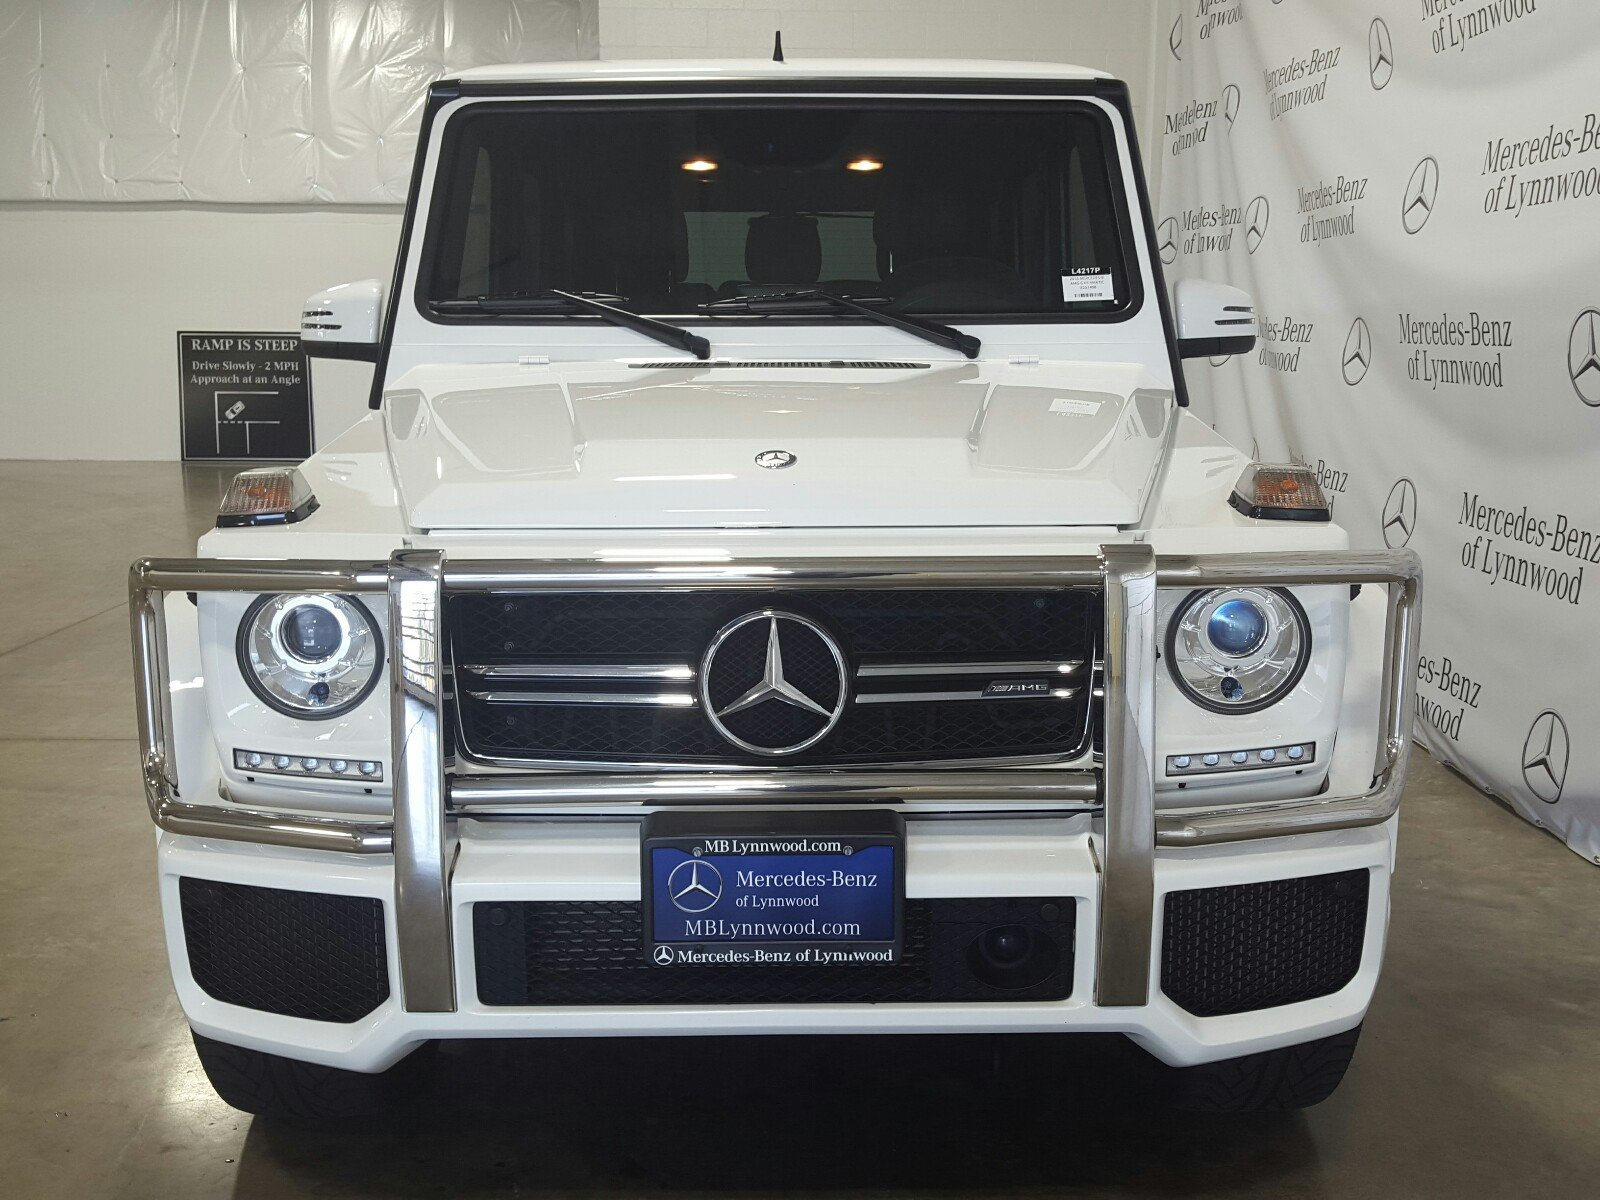 Certified Pre Owned 2016 Mercedes Benz G Class AMG G 63 4MATIC SUV